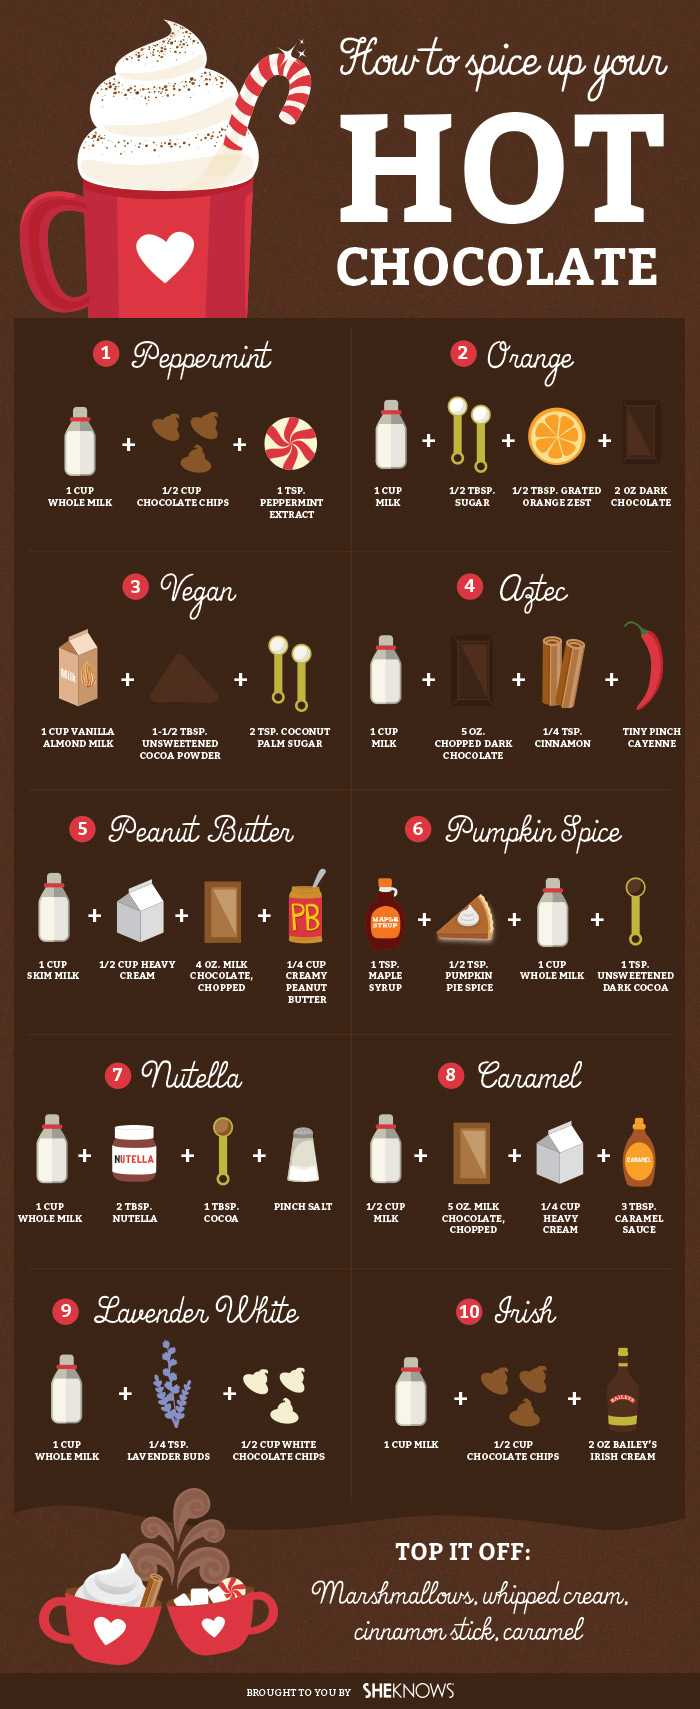 hot-chocolatte-infographic-chart-recipe-1